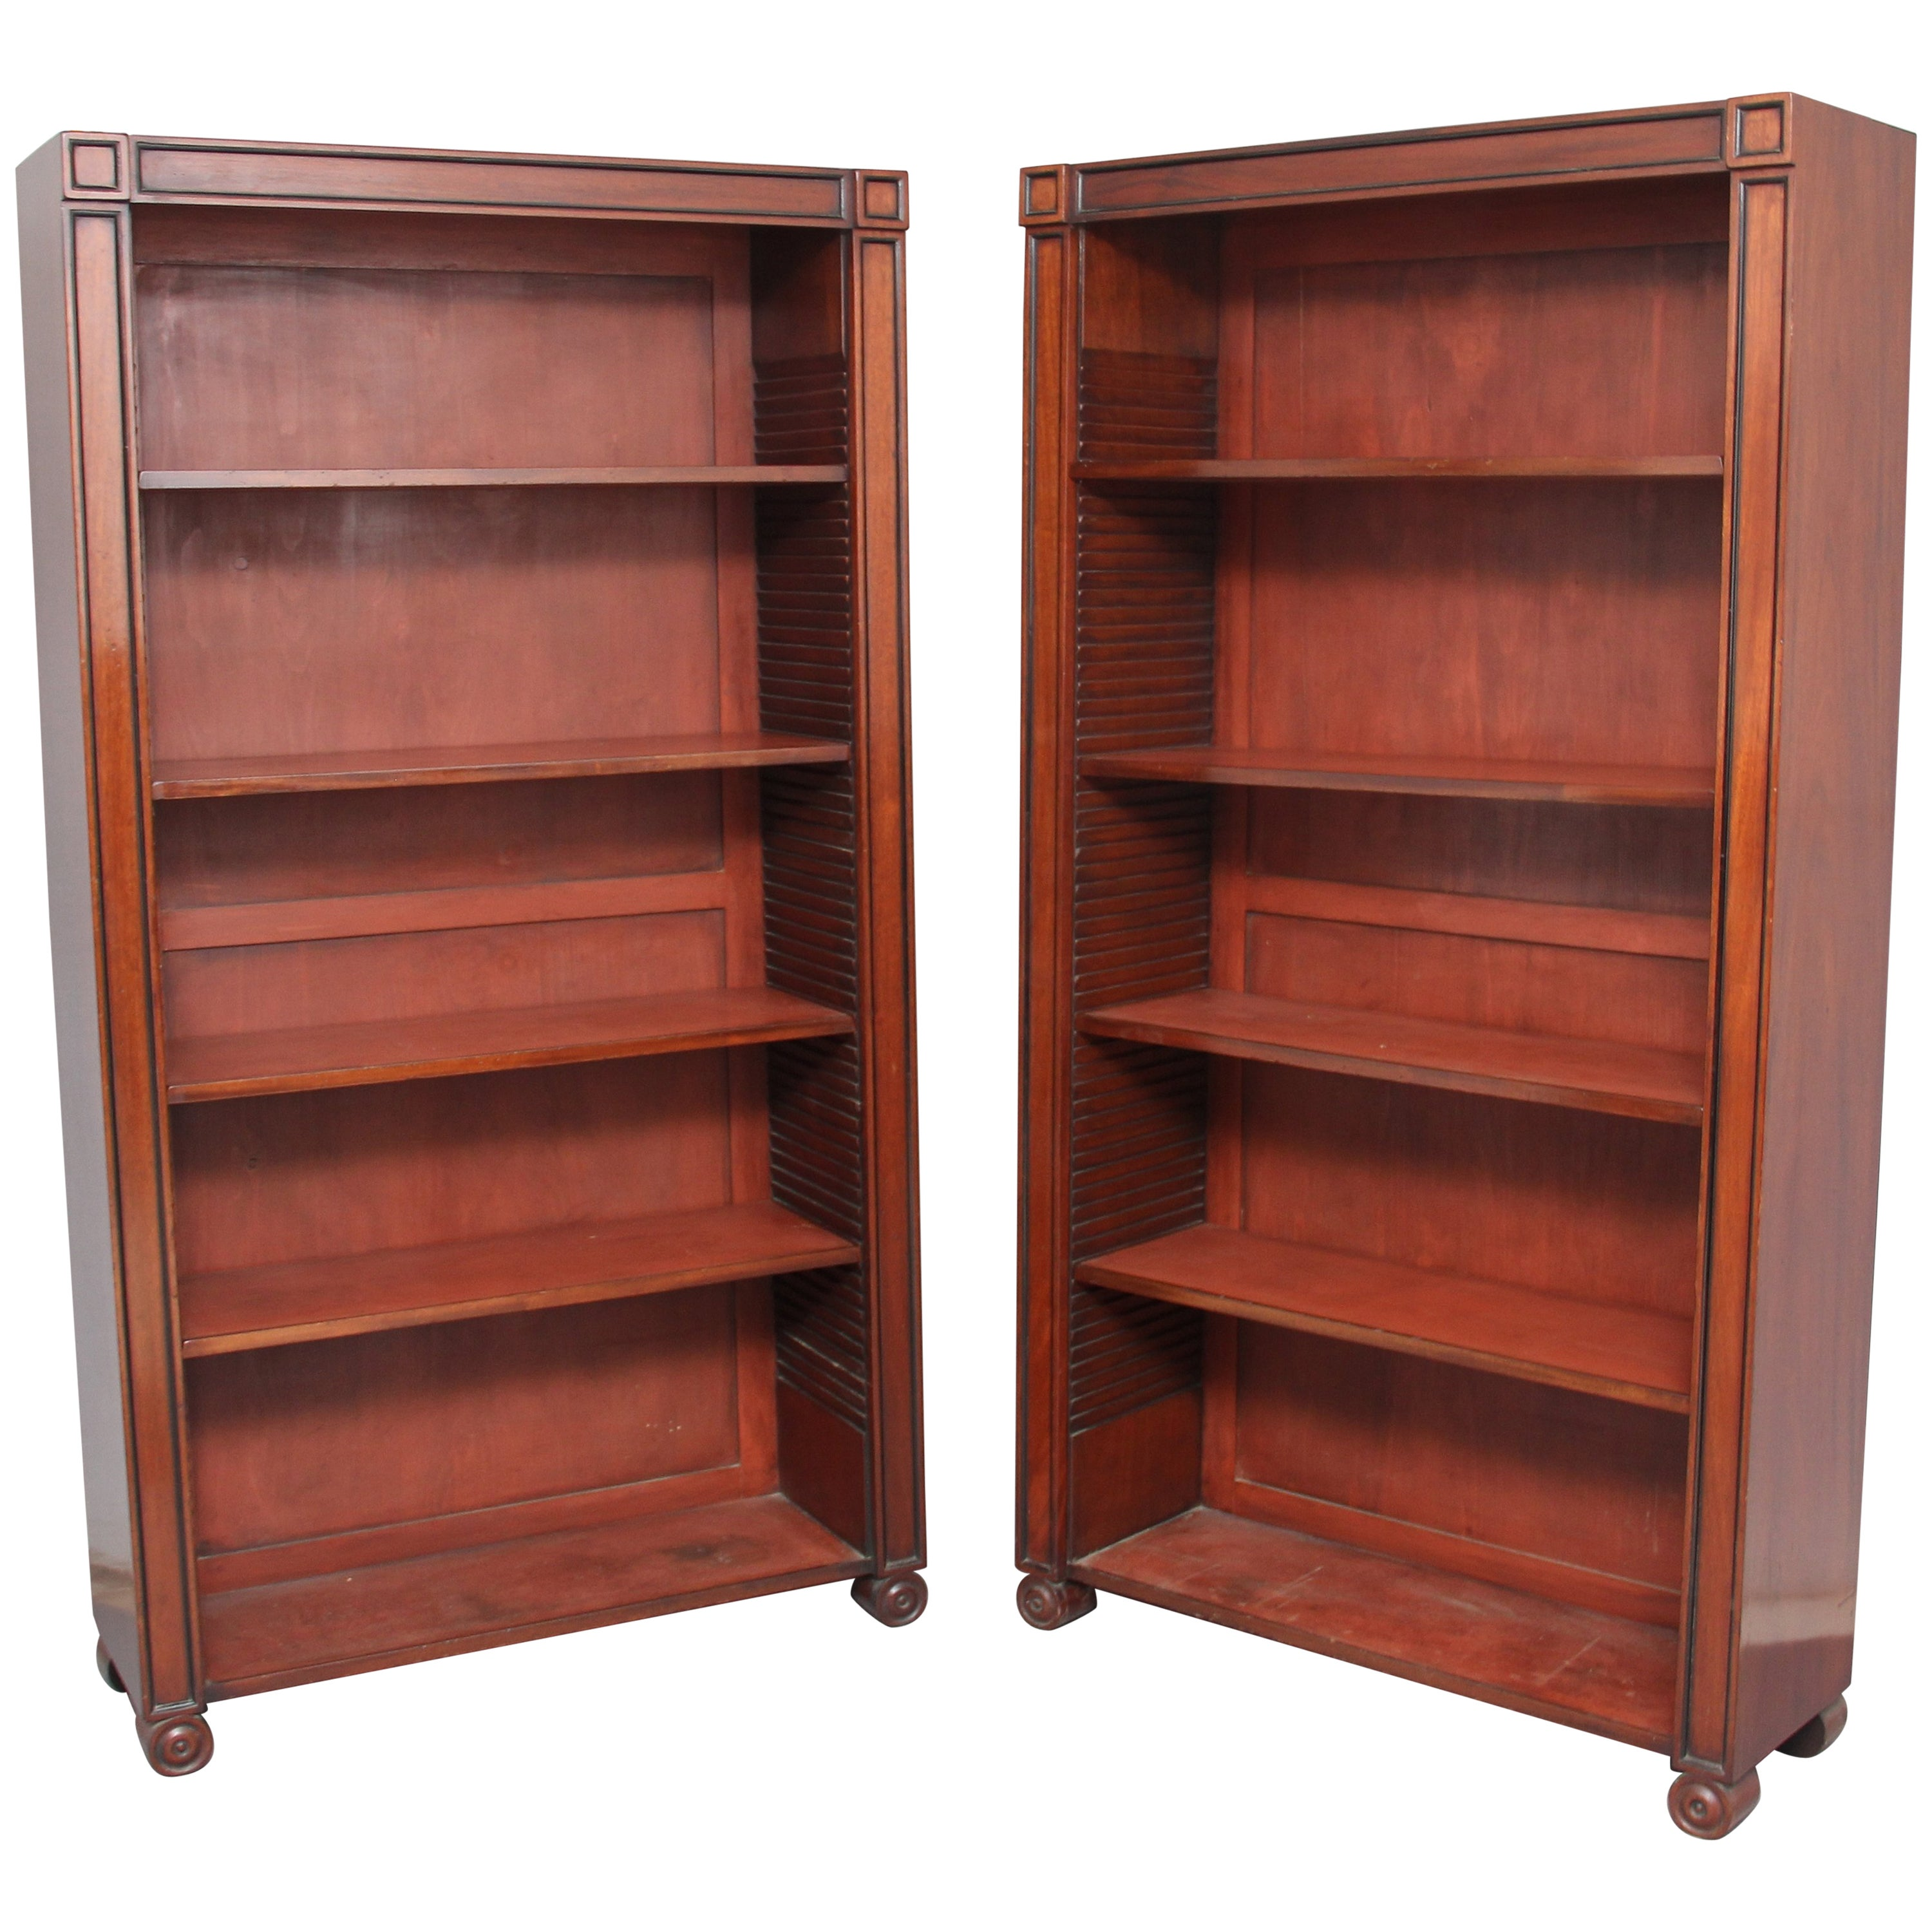 pin fiveinchfloppy cool apartment more swivel bookcases bookcase check mirror furniture at